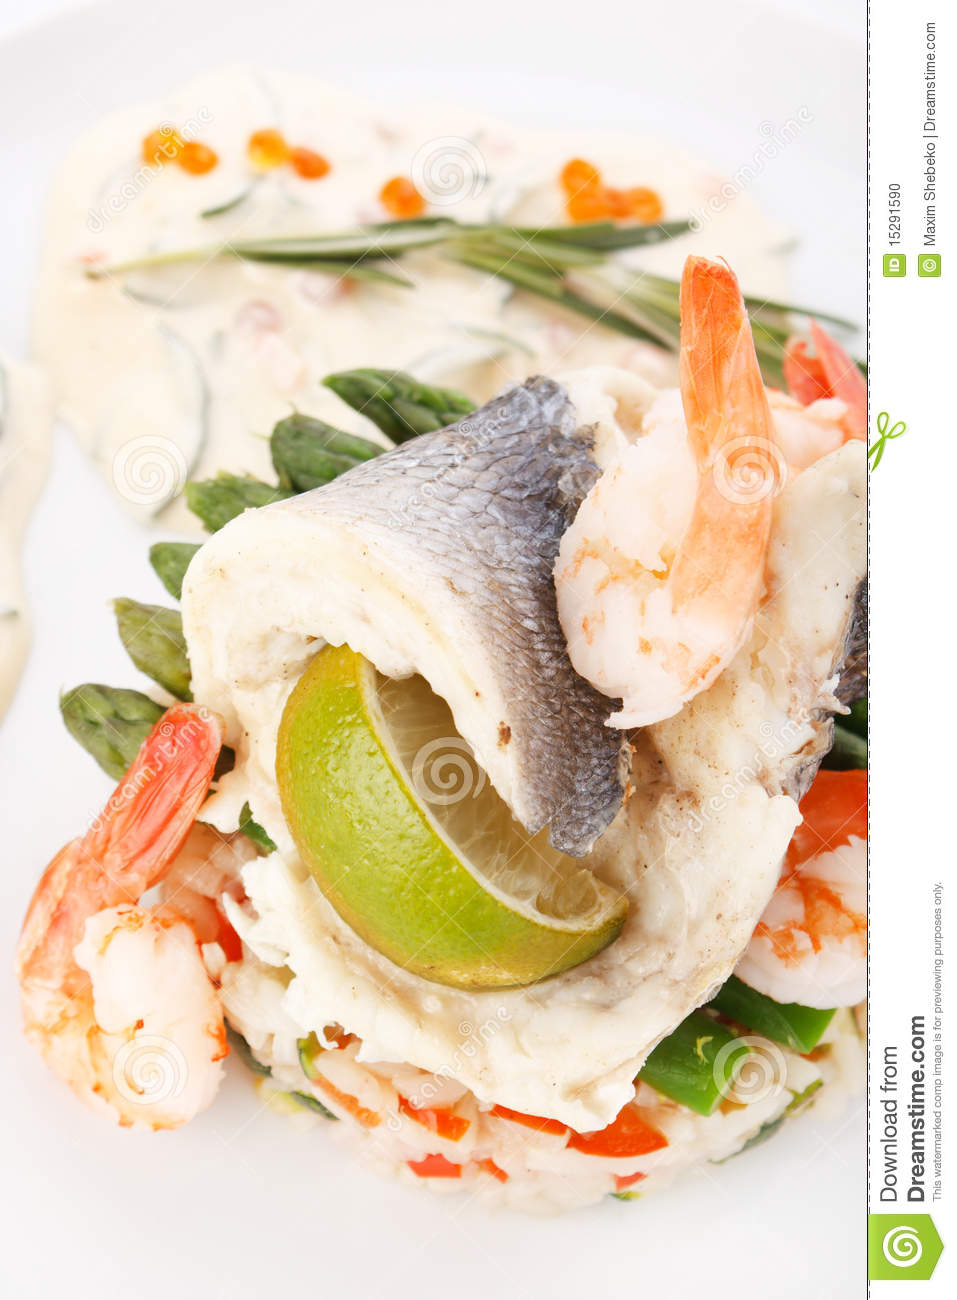 Fish with vegetables stock photo image 15291590 for What vegetables go with fish